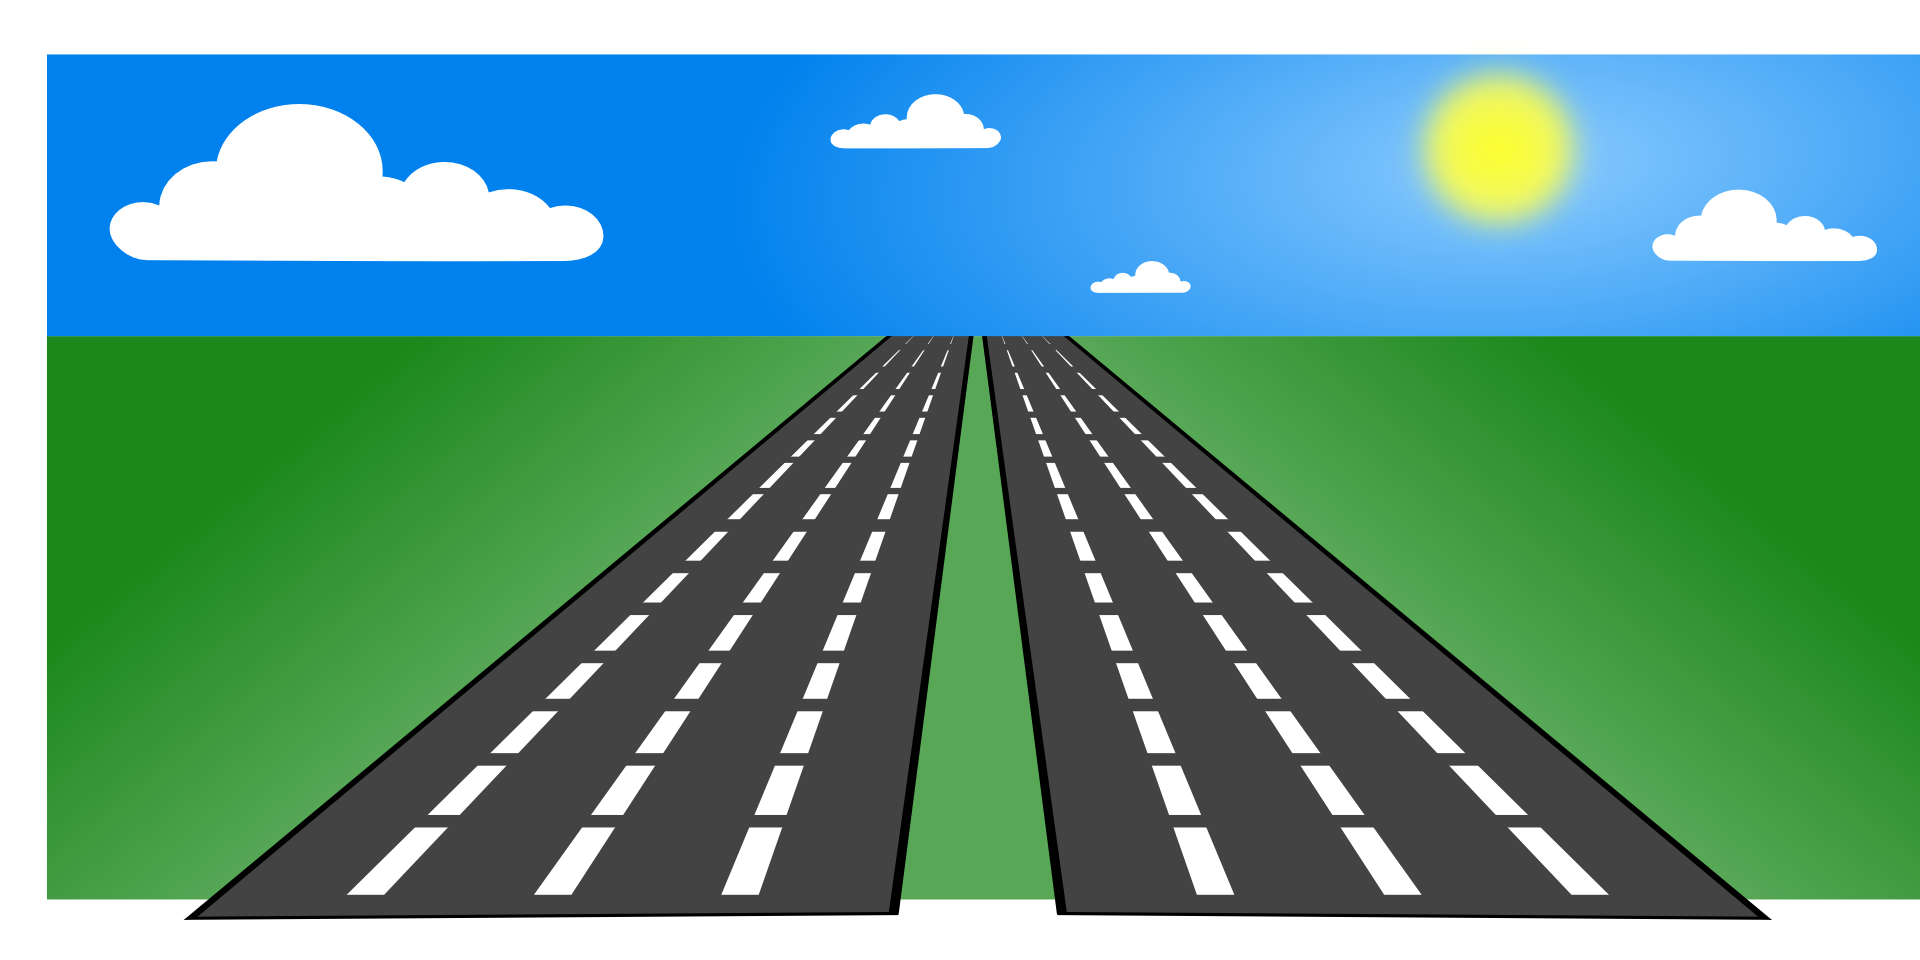 Freeway clipart clipart images gallery for free download.